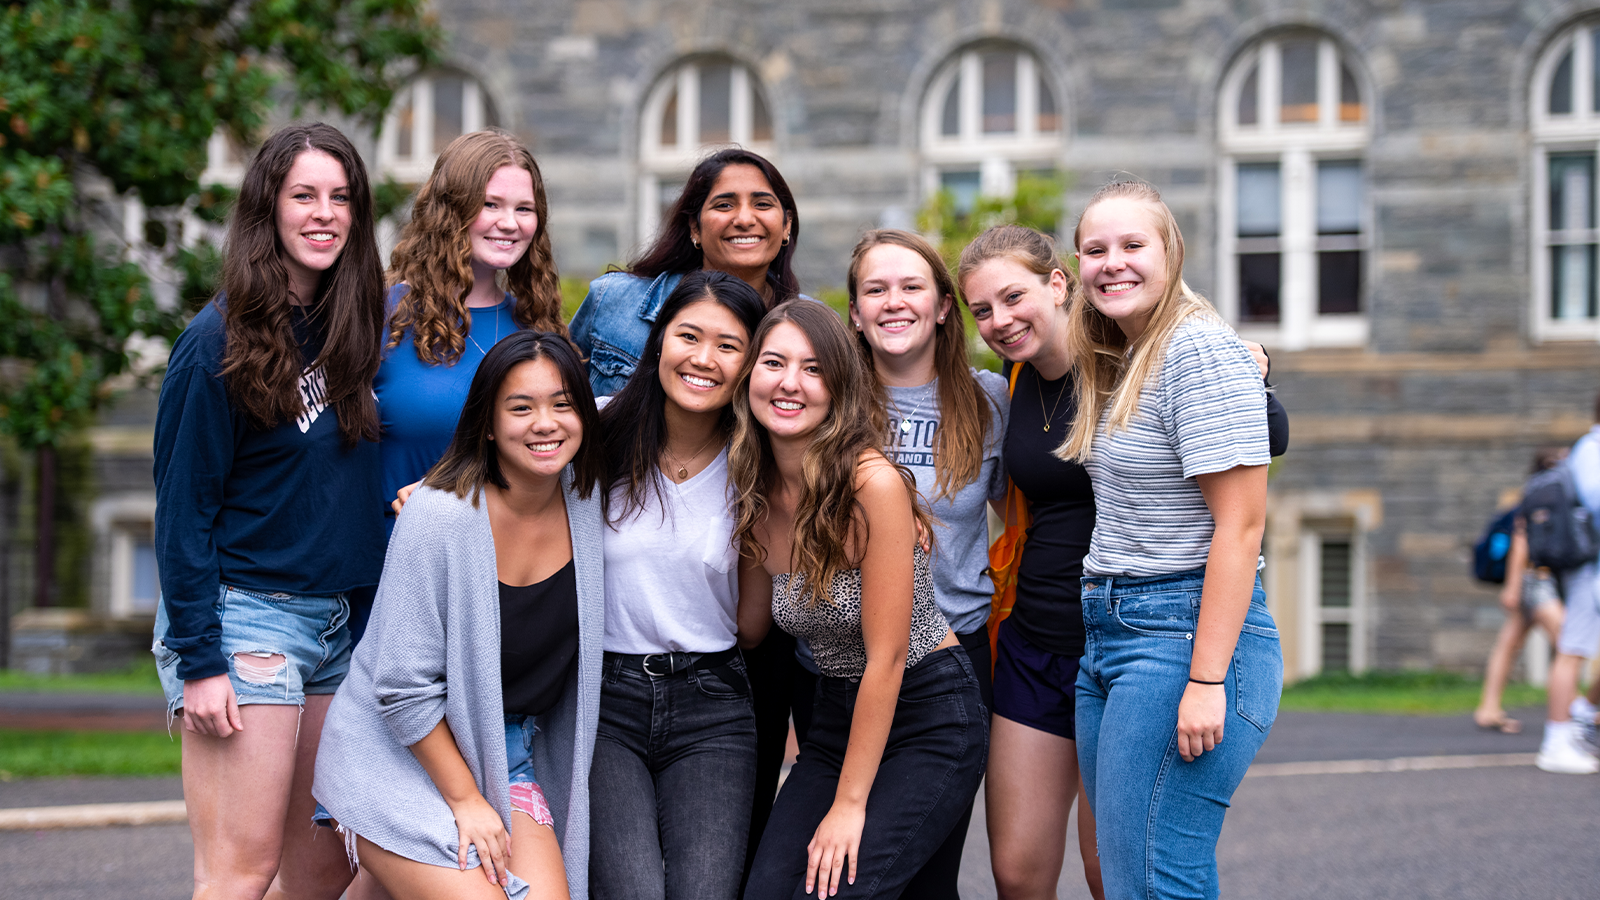 A group of female students smile in front of Healy Hall